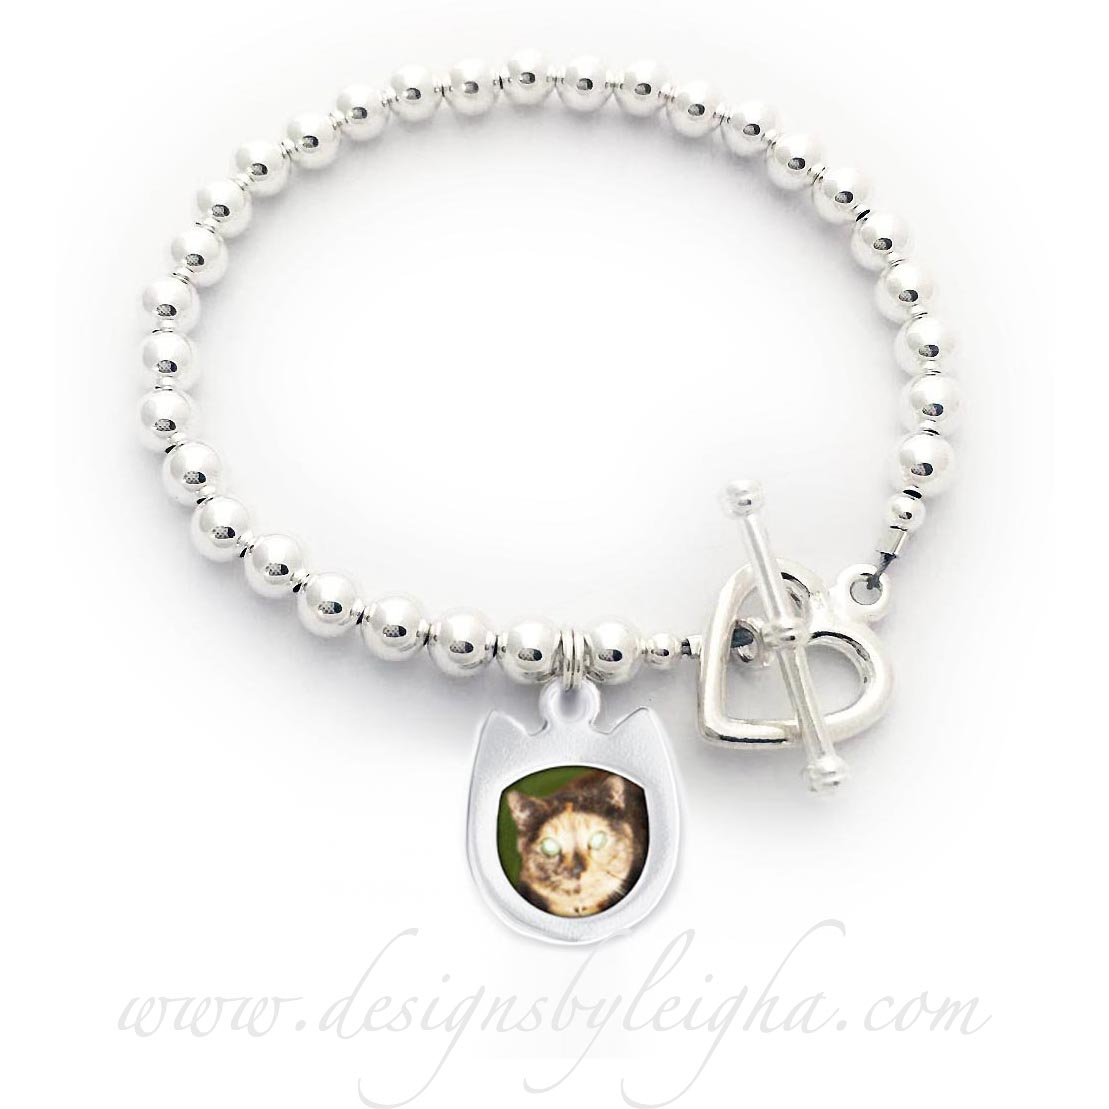 Cat Lover / Cat Photo Charm Bracelet comes with 5 Dog House or Cat Picture Frame Charms. The perfect gift for a Fur Mommy with Fur Babies! I would be happy to insert the photographs into the Dog Picture Frame charms, if you would prefer.